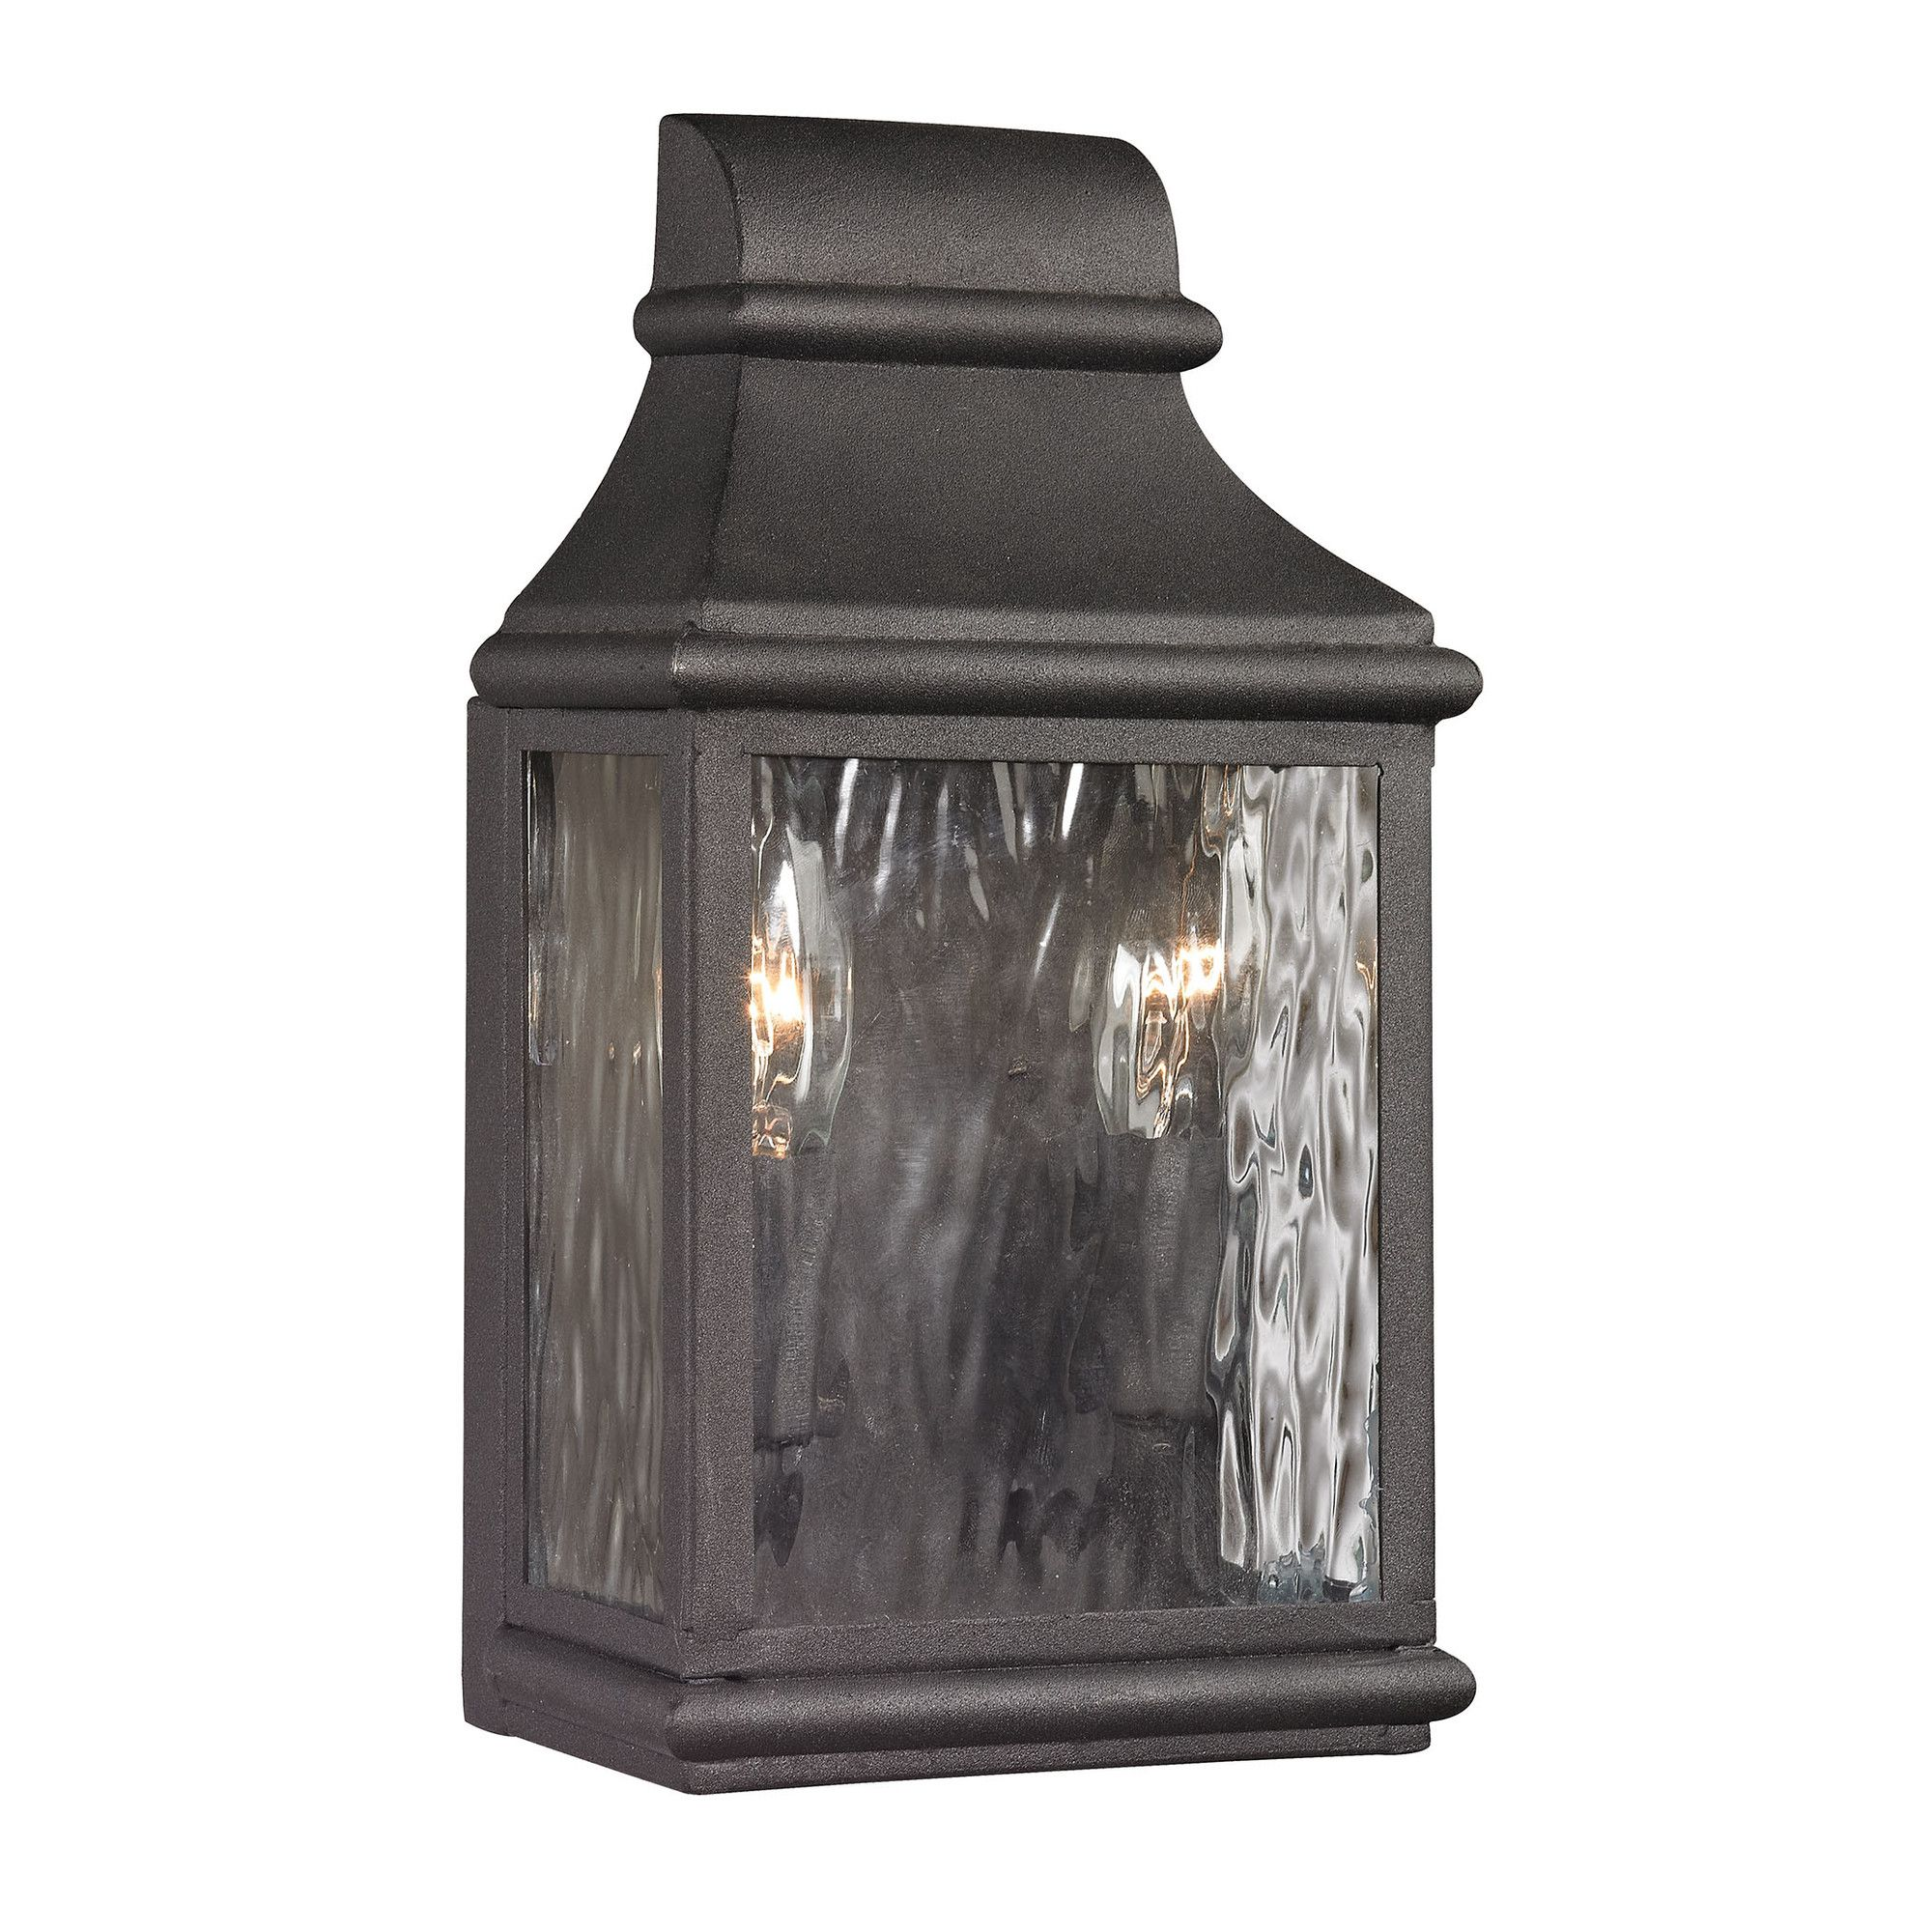 Jaxley 2 Light Outdoor Wall Lantern